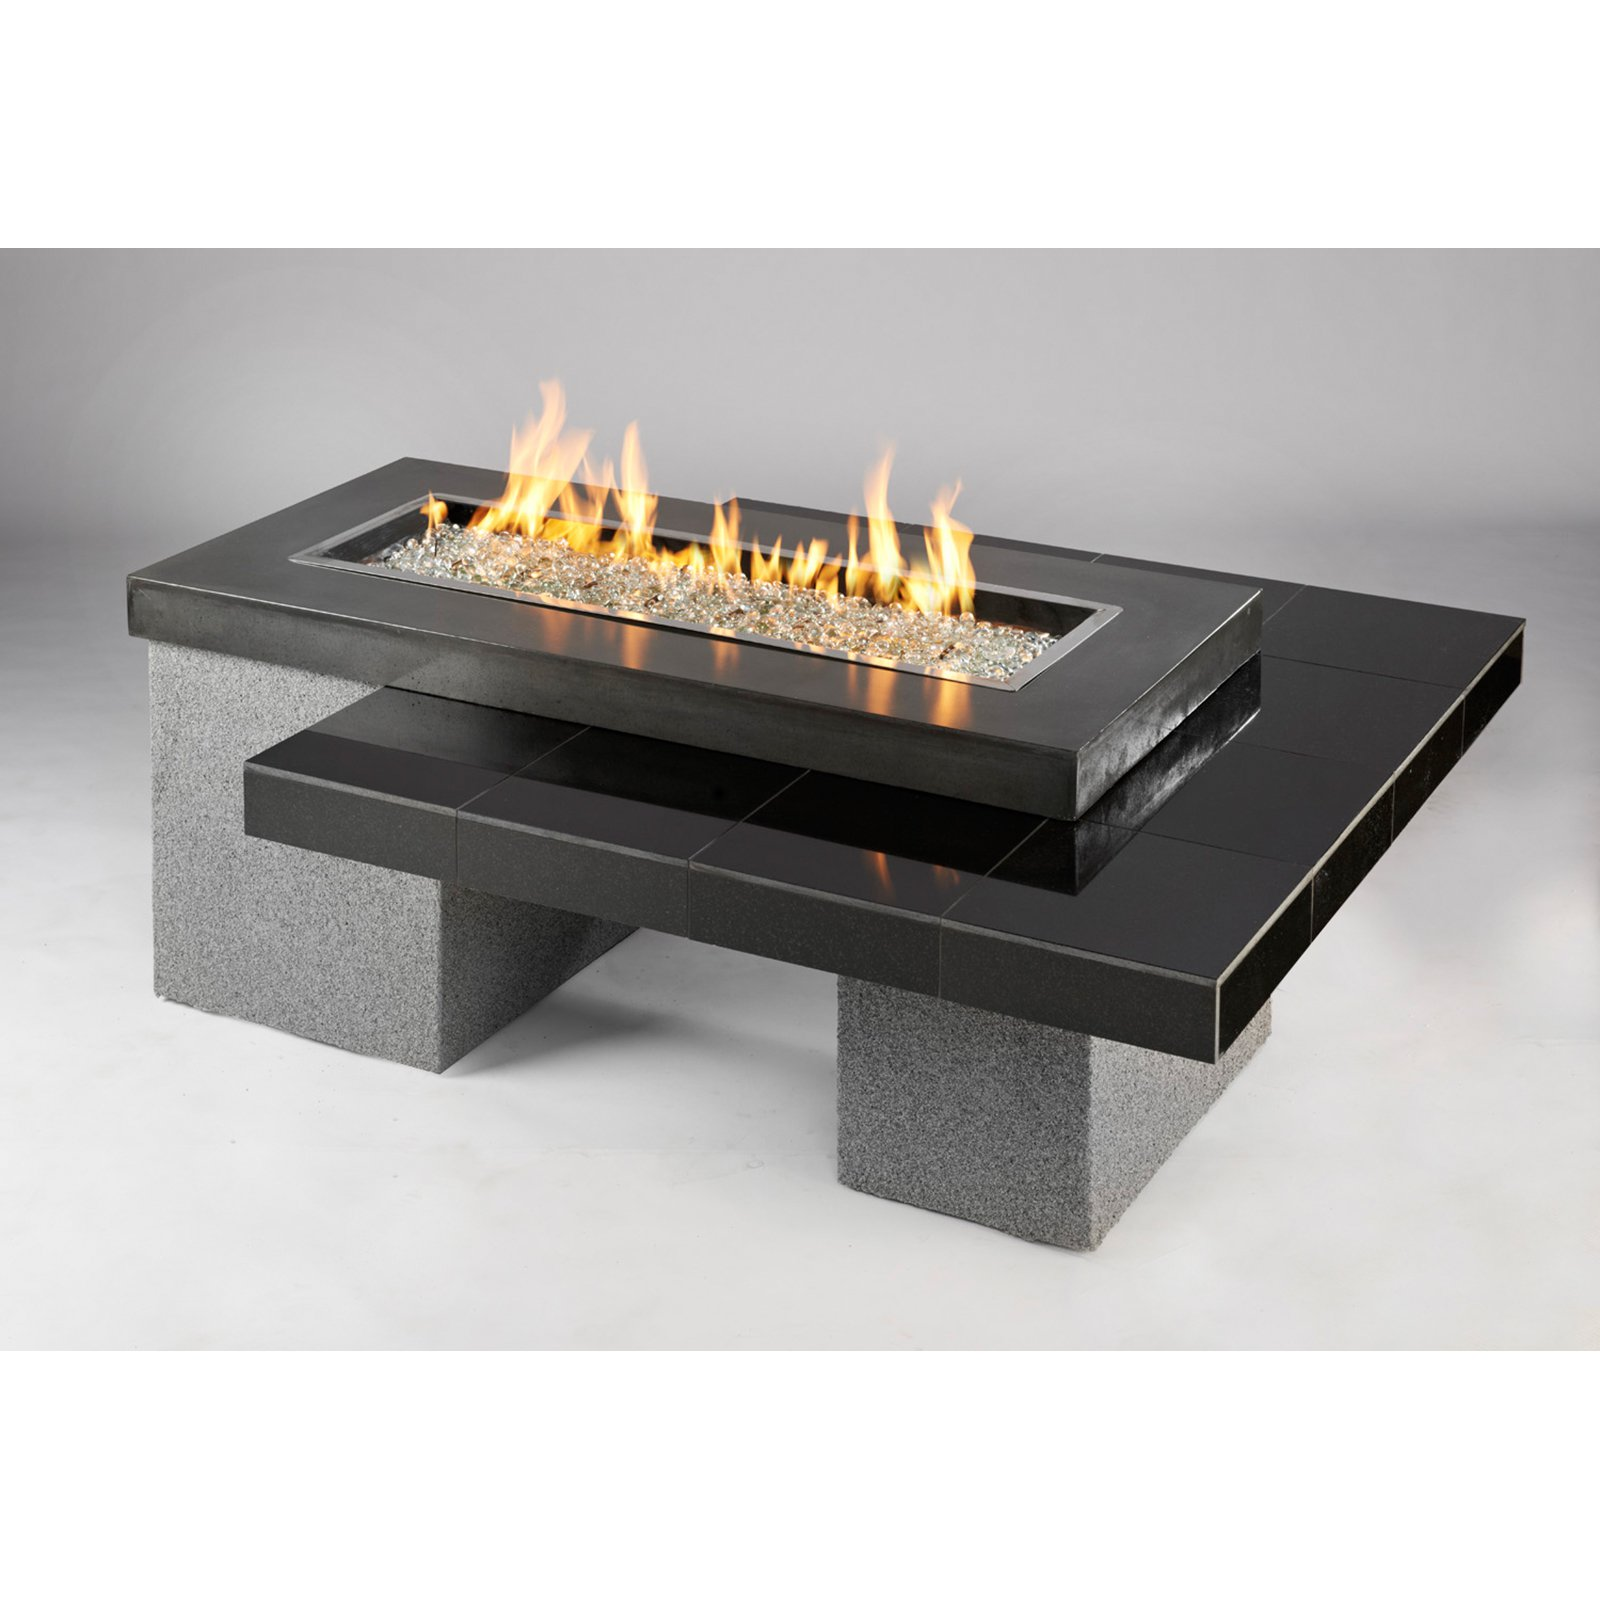 "Better Homes and Gardens Colebrook 37"" Gas Fire Pit Walmart"